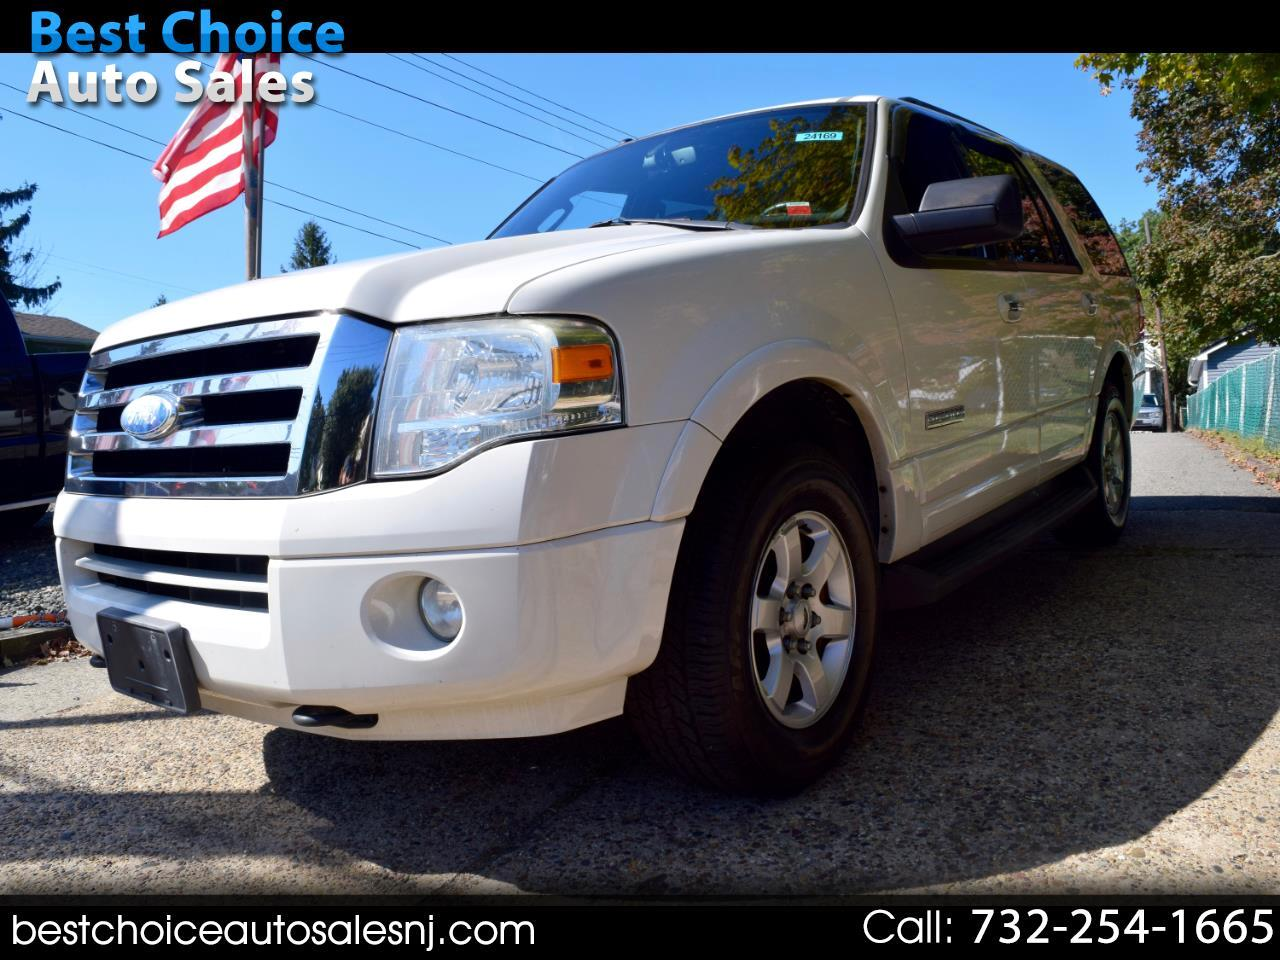 2008 Ford Expedition 4WD 4dr XLT